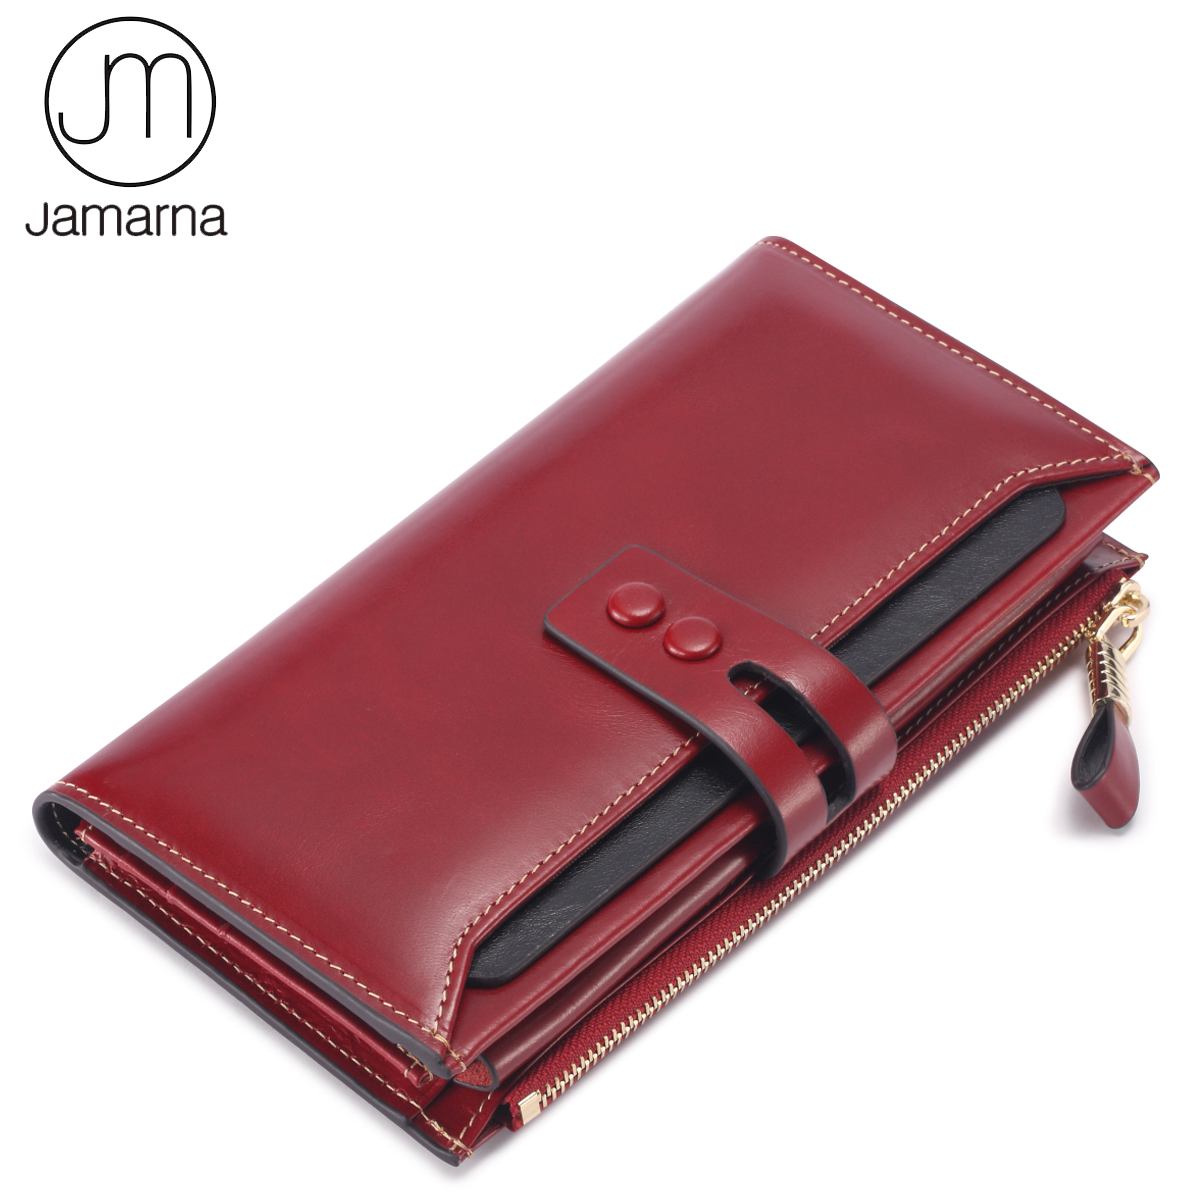 Jamarna Brand Women Wallets Genuine Leather Long Clutch Women Purse With Card Holder Phone Zipper Pocket Ladies Wallet Female top brand genuine leather wallets for men women large capacity zipper clutch purses cell phone passport card holders notecase